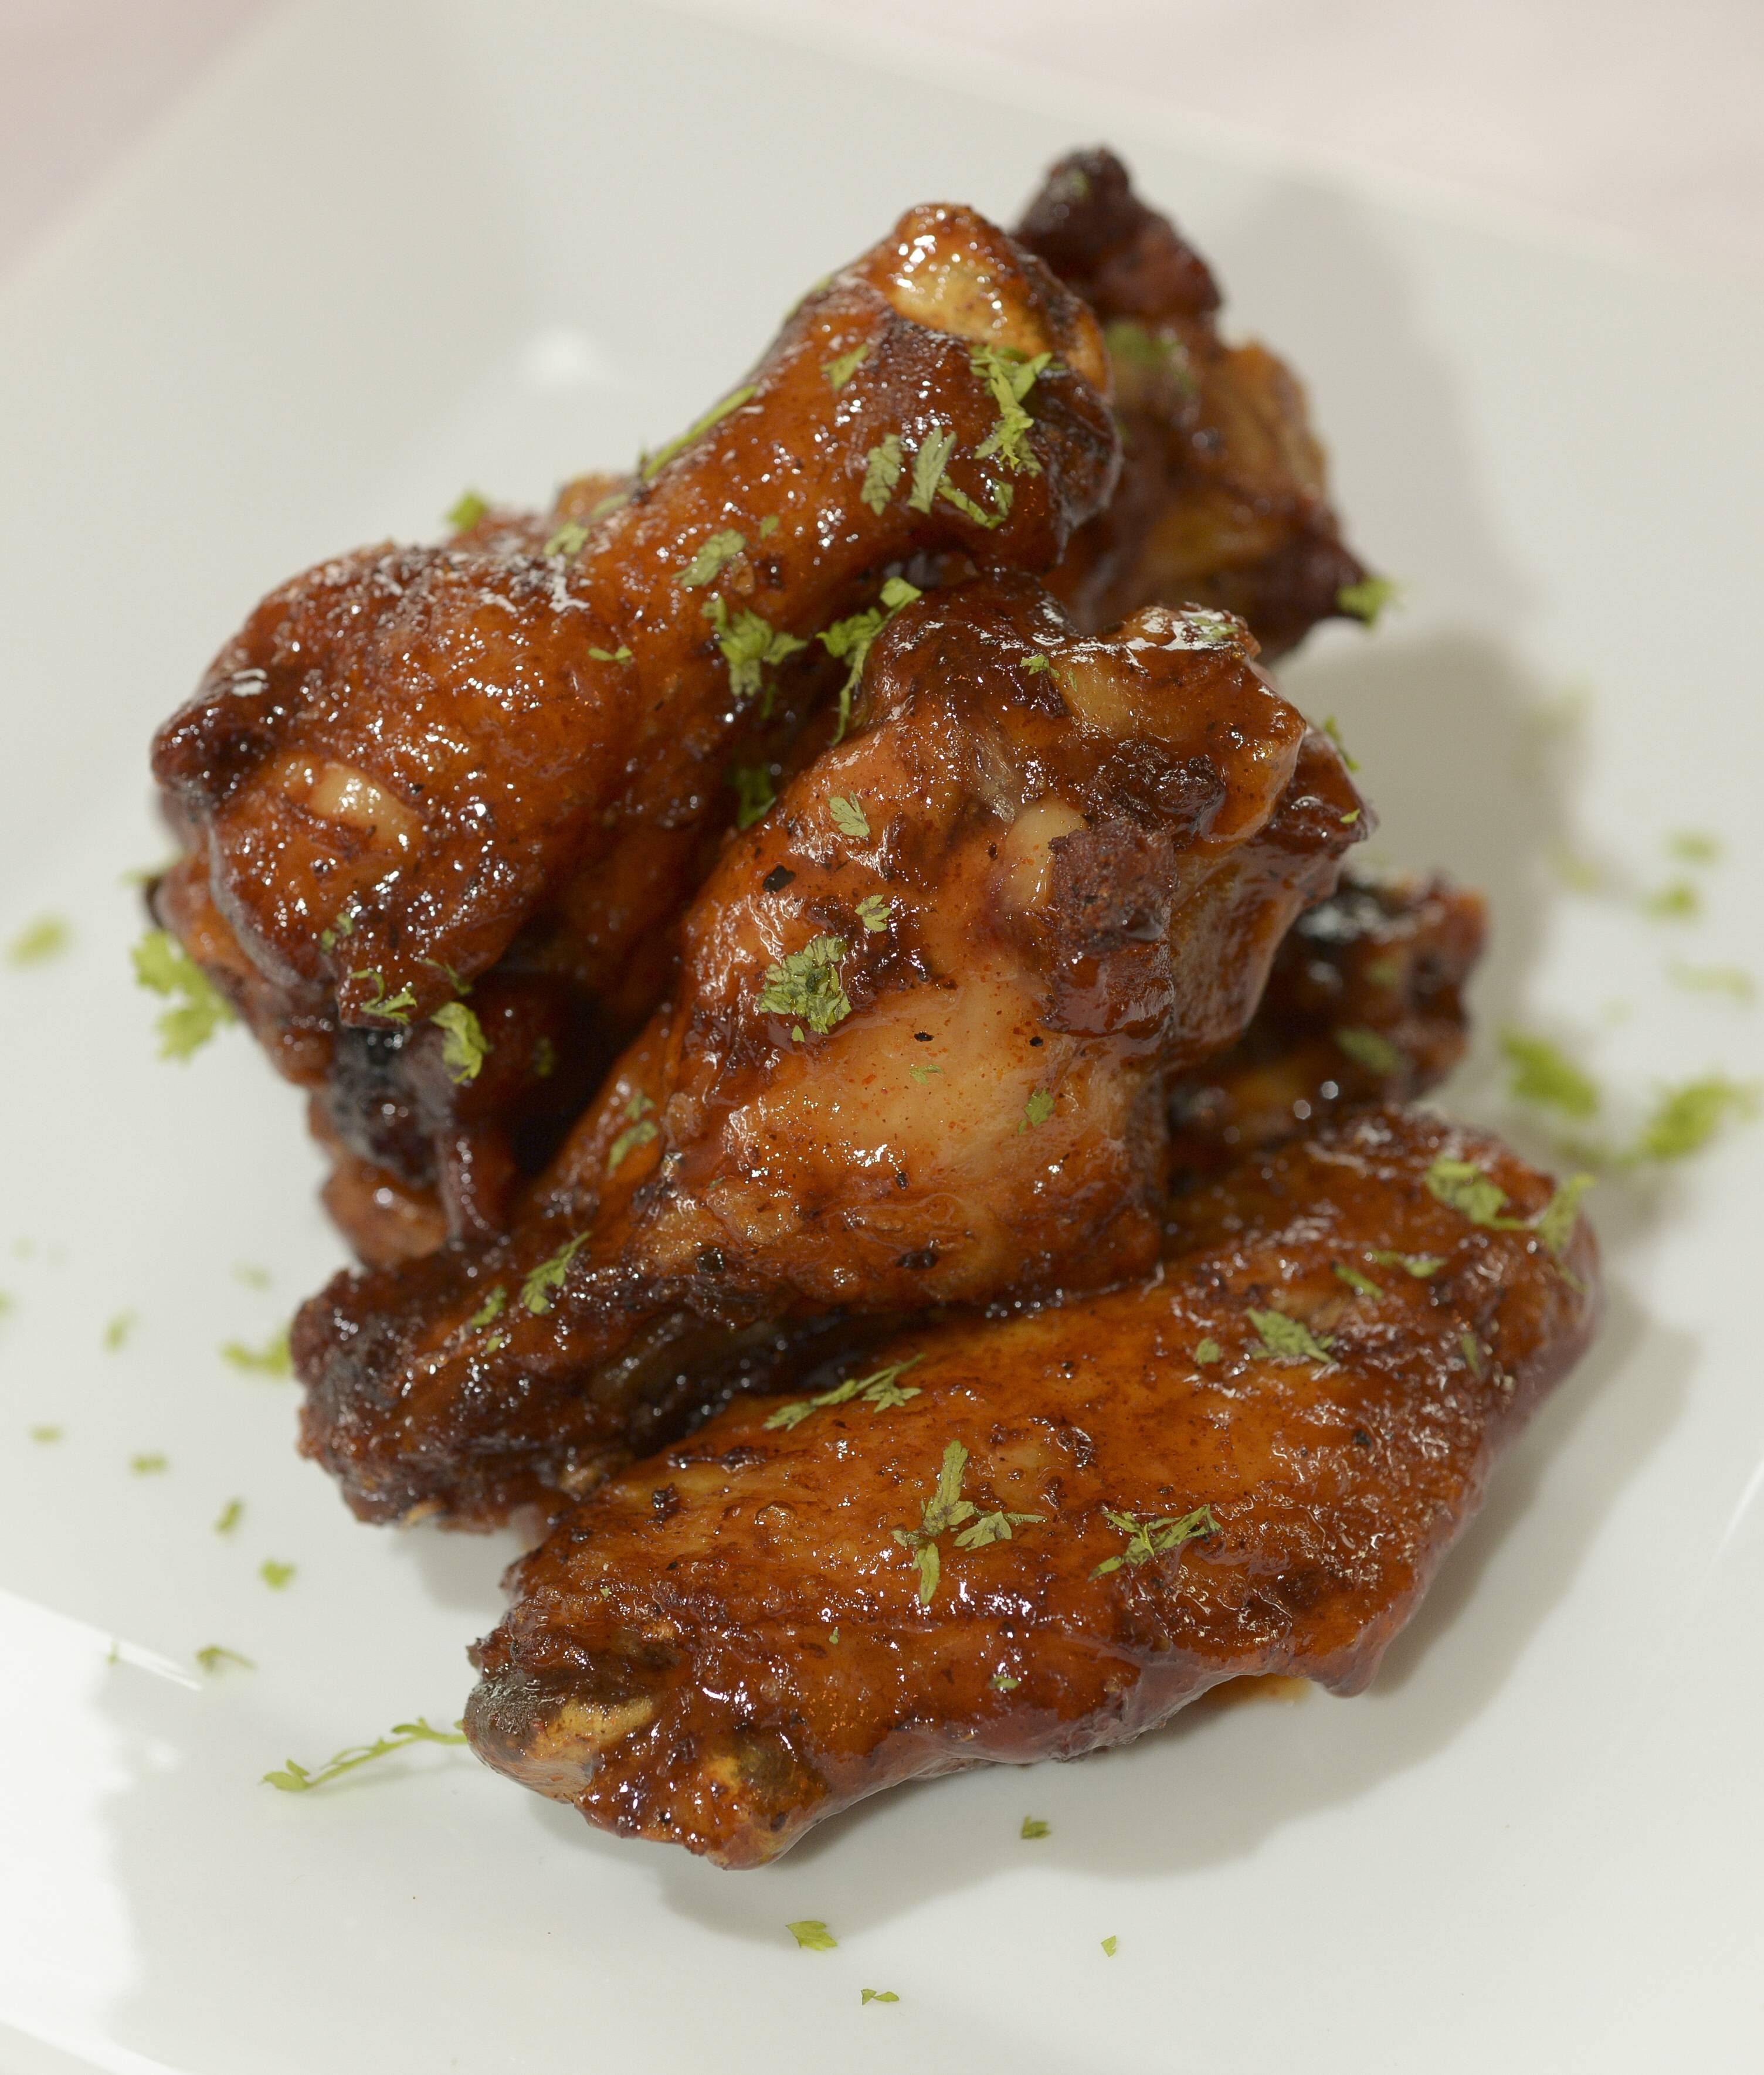 Smoked chicken wings are a not-to-be-missed starter at Union House in Winfield.